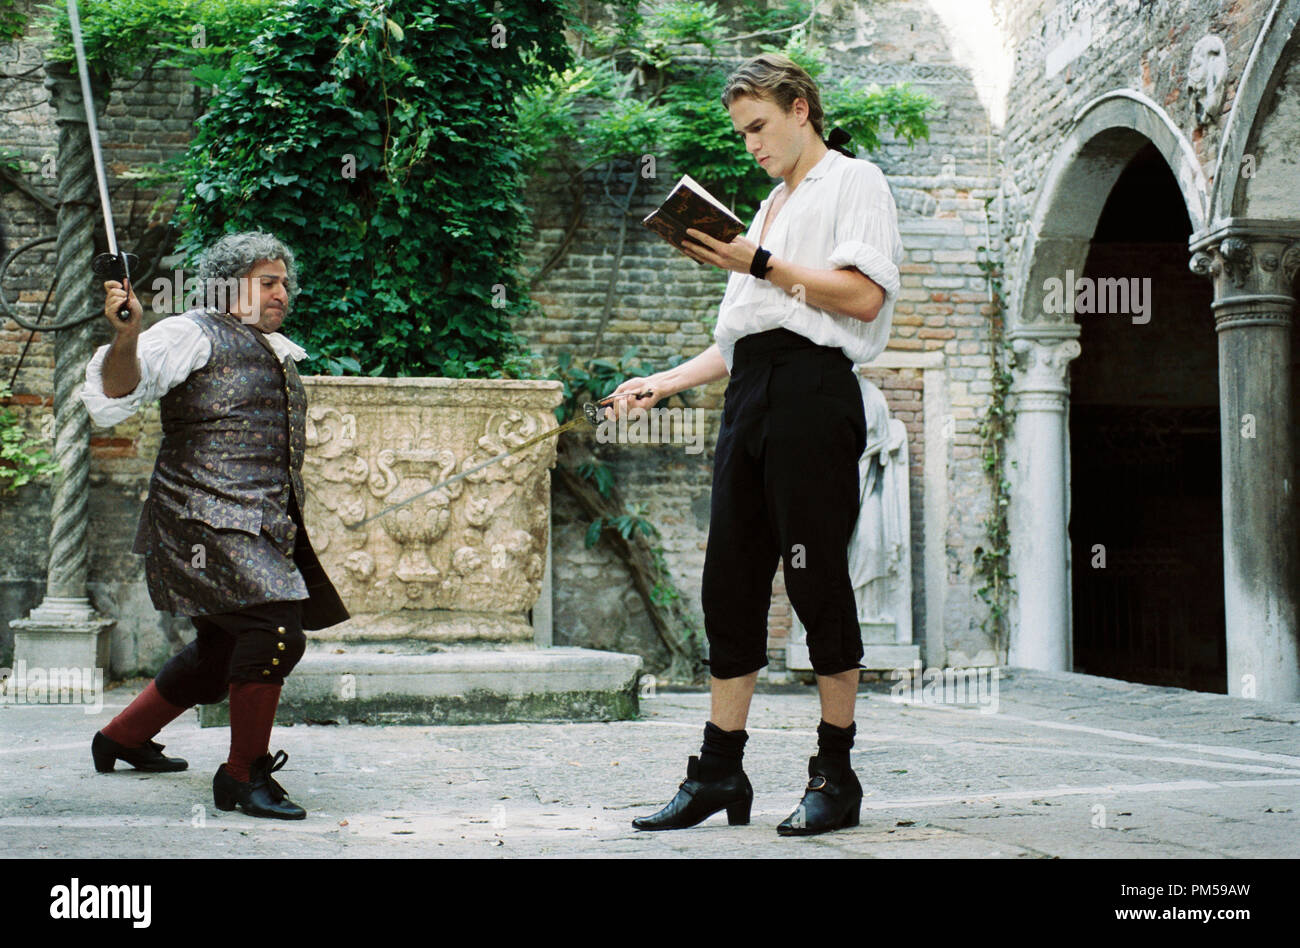 Studio Publicity Still from 'Casanova' Omid Djalili, Heath Ledger © 2005 Touchstone Pictures Photo by Doane Gregory   File Reference # 307362261THA  For Editorial Use Only -  All Rights Reserved - Stock Image